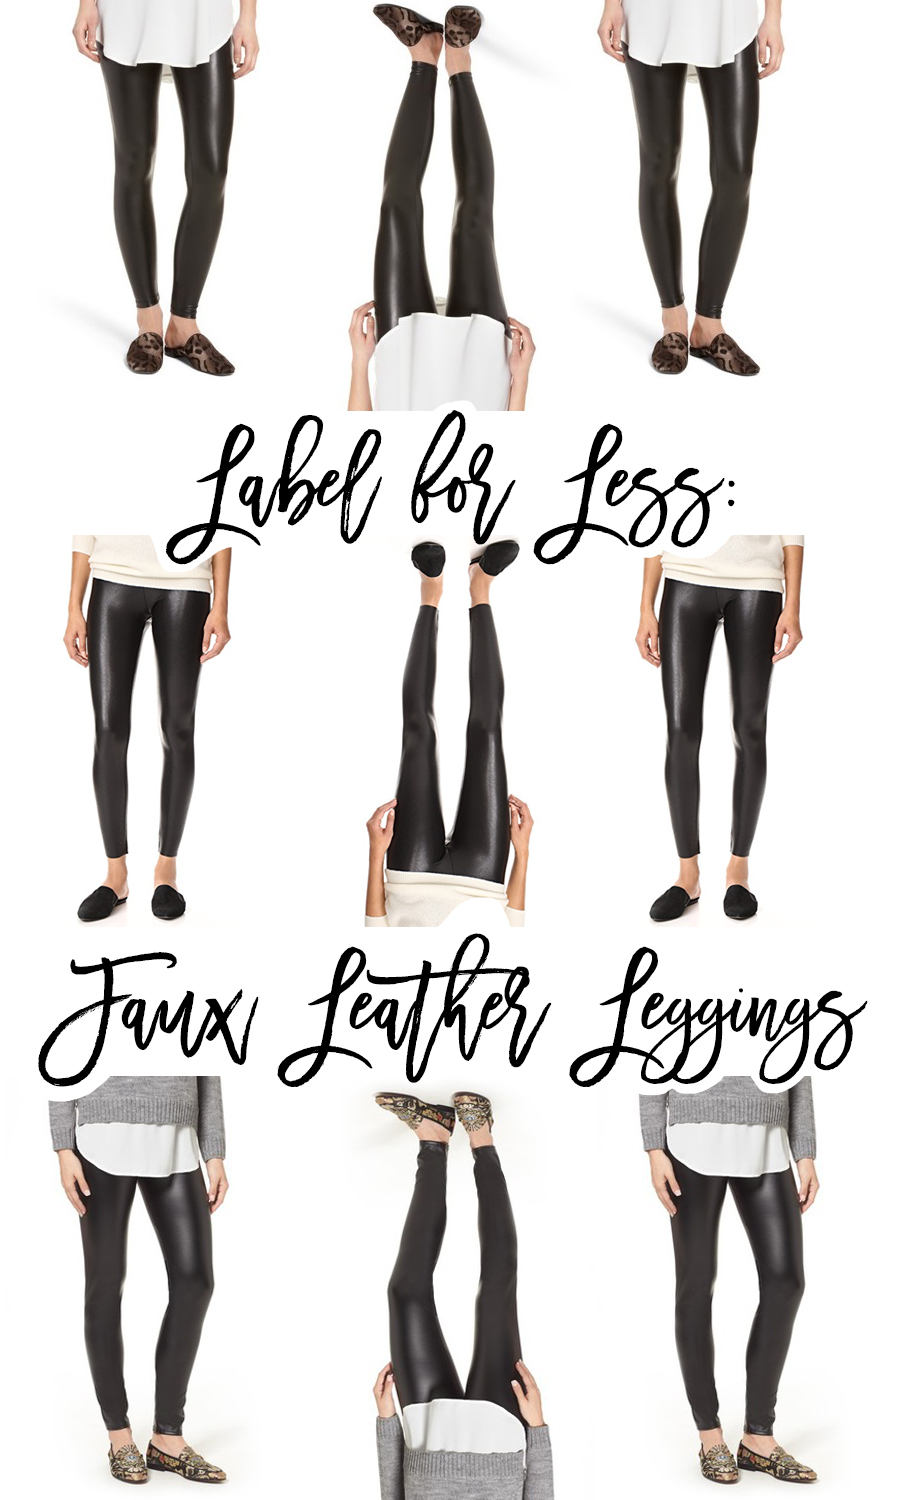 Label for Less Faux Leather Leggings, Spanx Faux Leather Leggings, Fitness Leggings, Fashion Leggings, Have Need Want